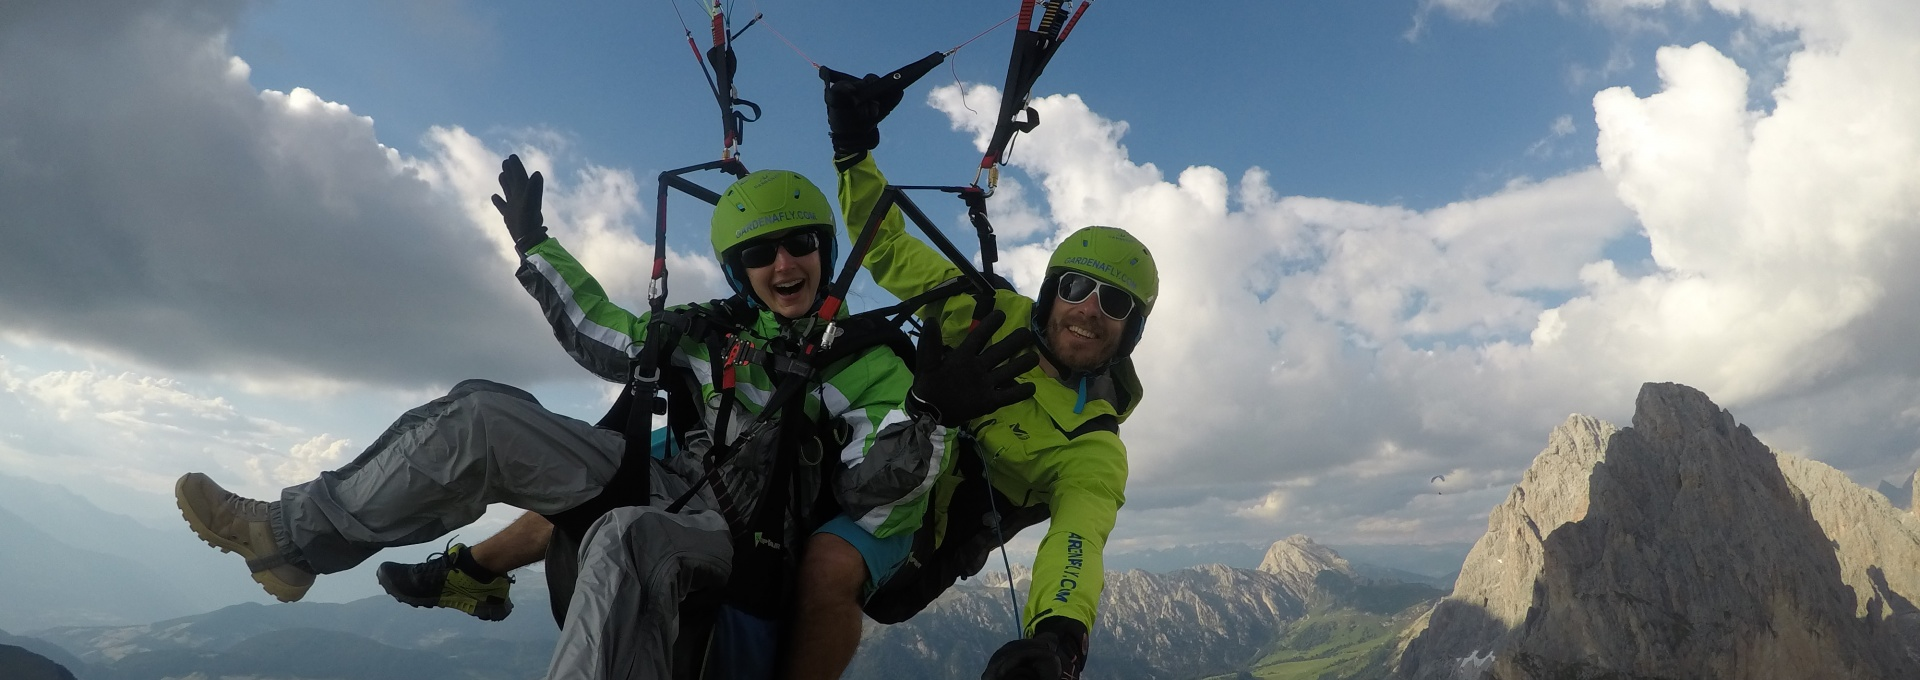 Paragliding is sooo beautiful